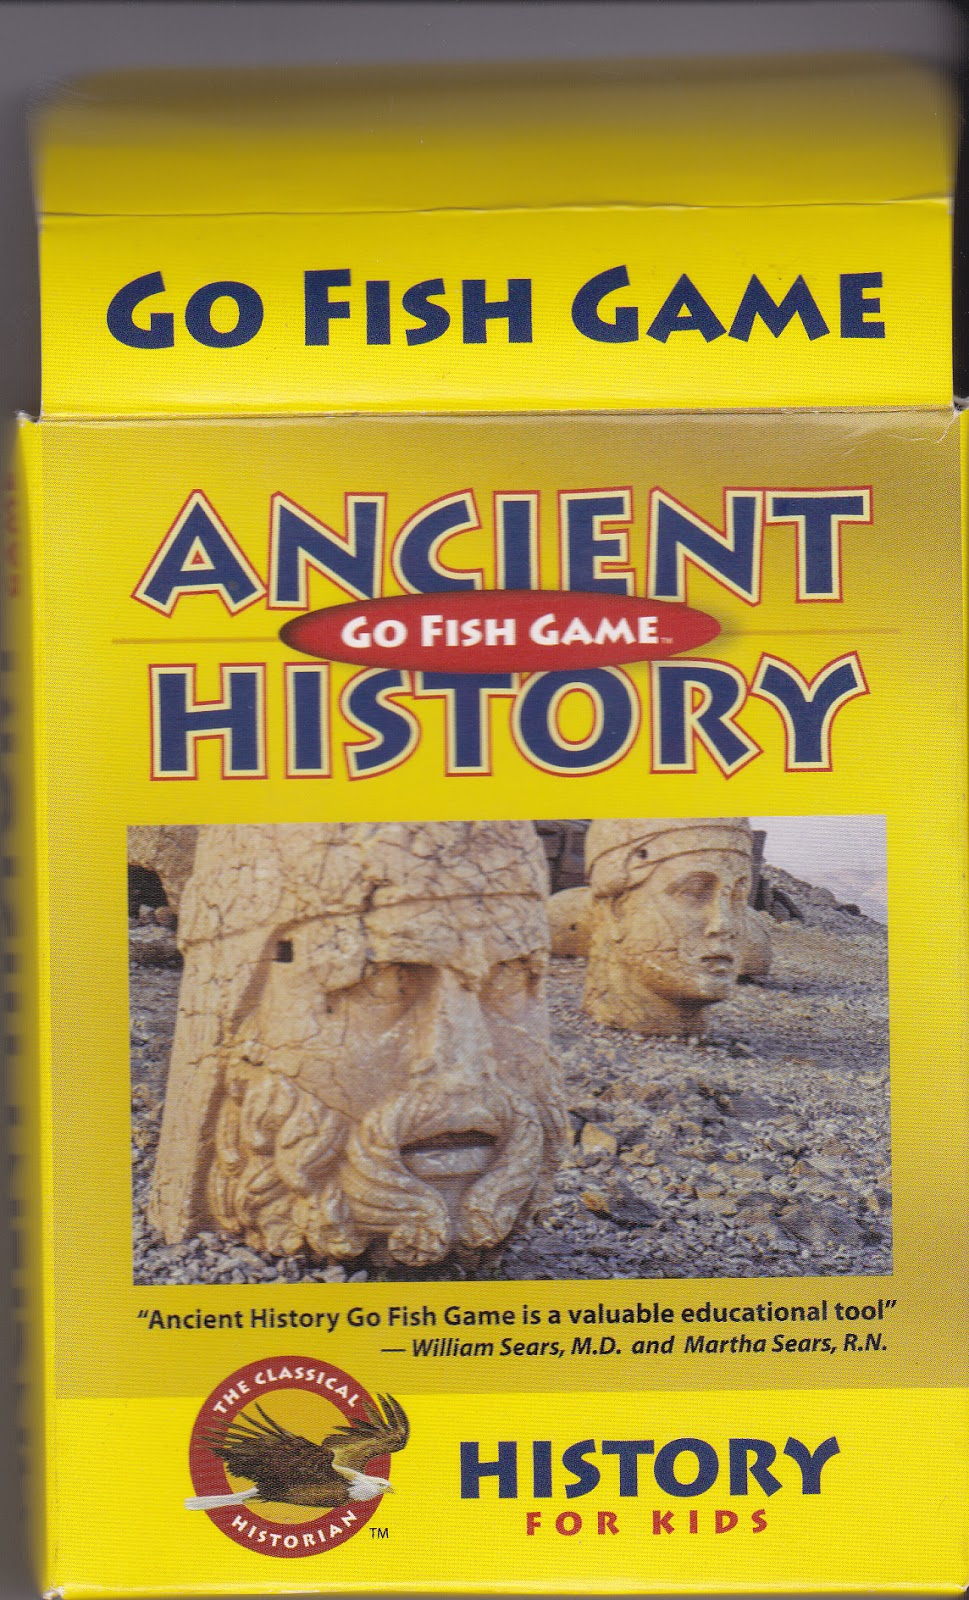 Ancient history go fish game review katie 39 s daily life for Go fish games